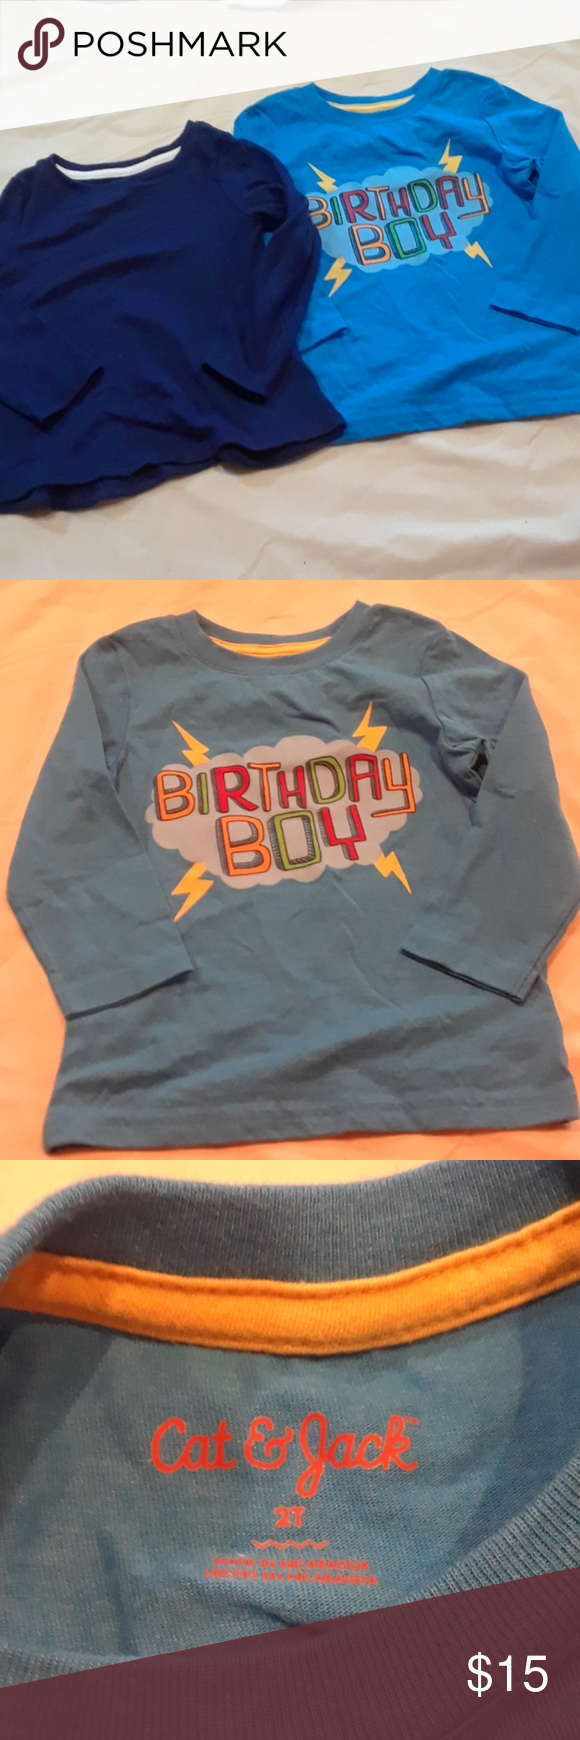 Boys Birthday Boy Shirt Navy 2T Both New Without Tags Size Box 3 Cat Jack Shirts Tops Tees